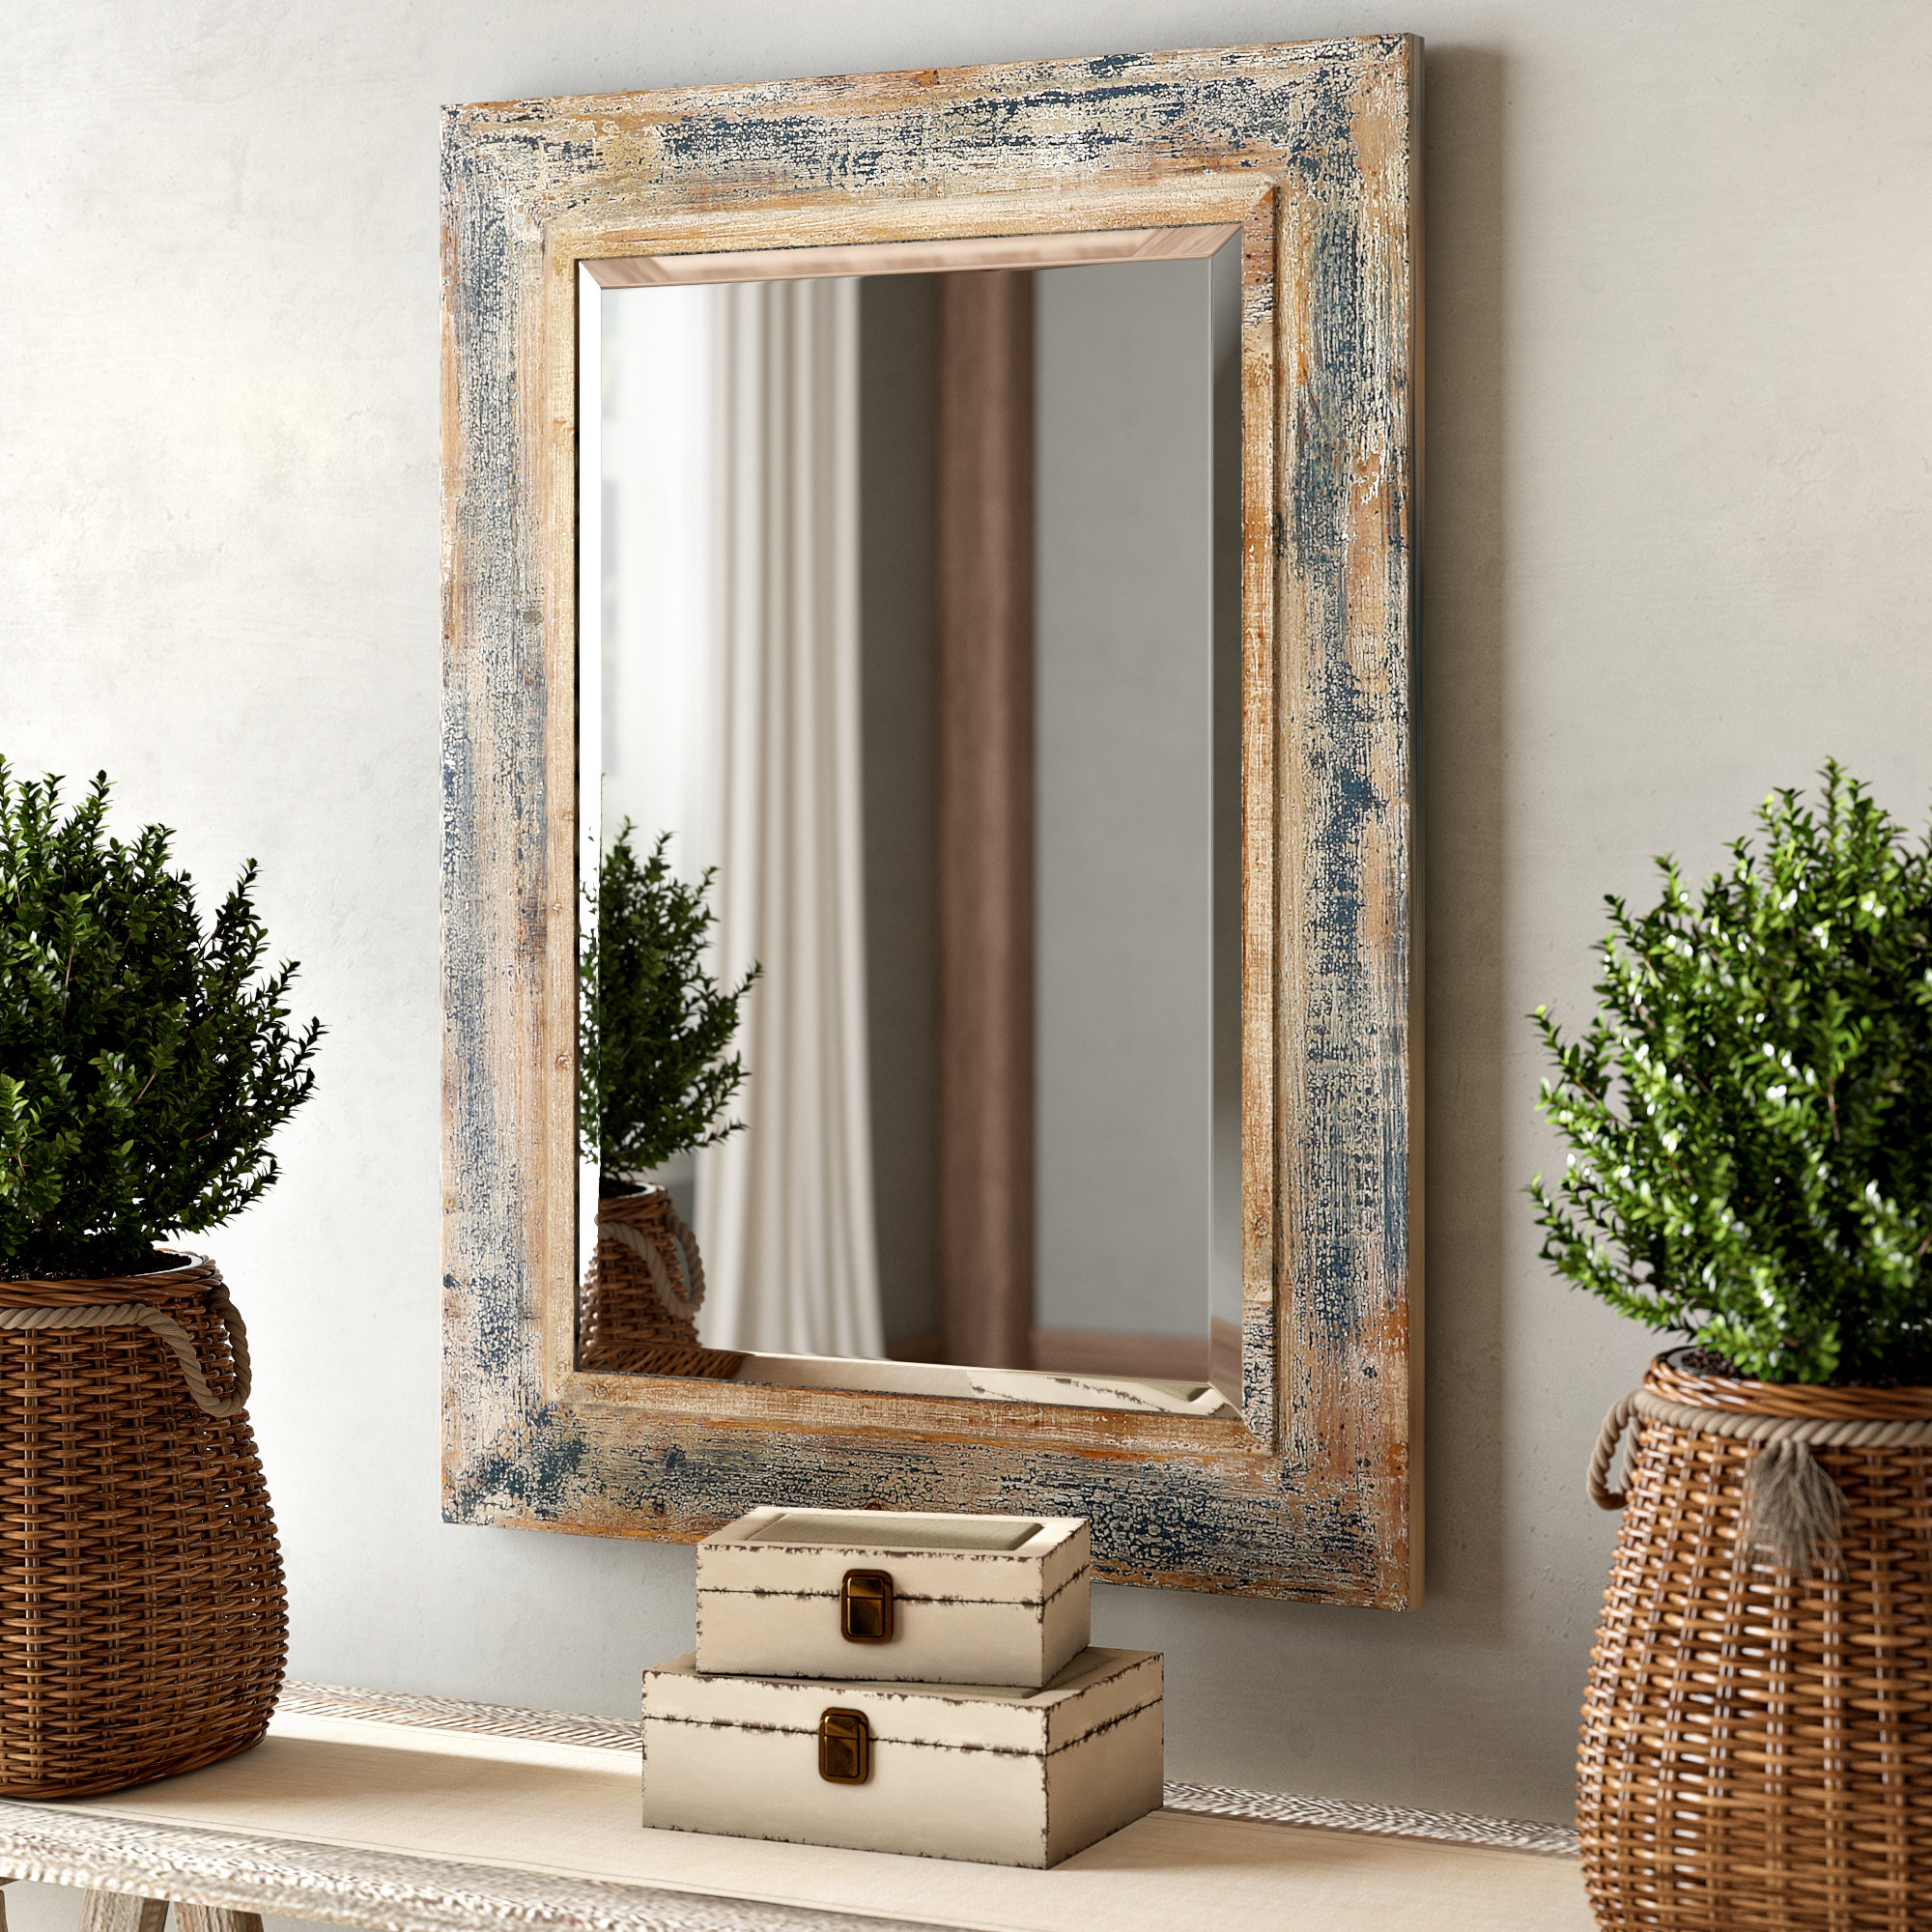 Latest Janie Rectangular Wall Mirror For Decorative Rectangular Wall Mirrors (View 15 of 20)